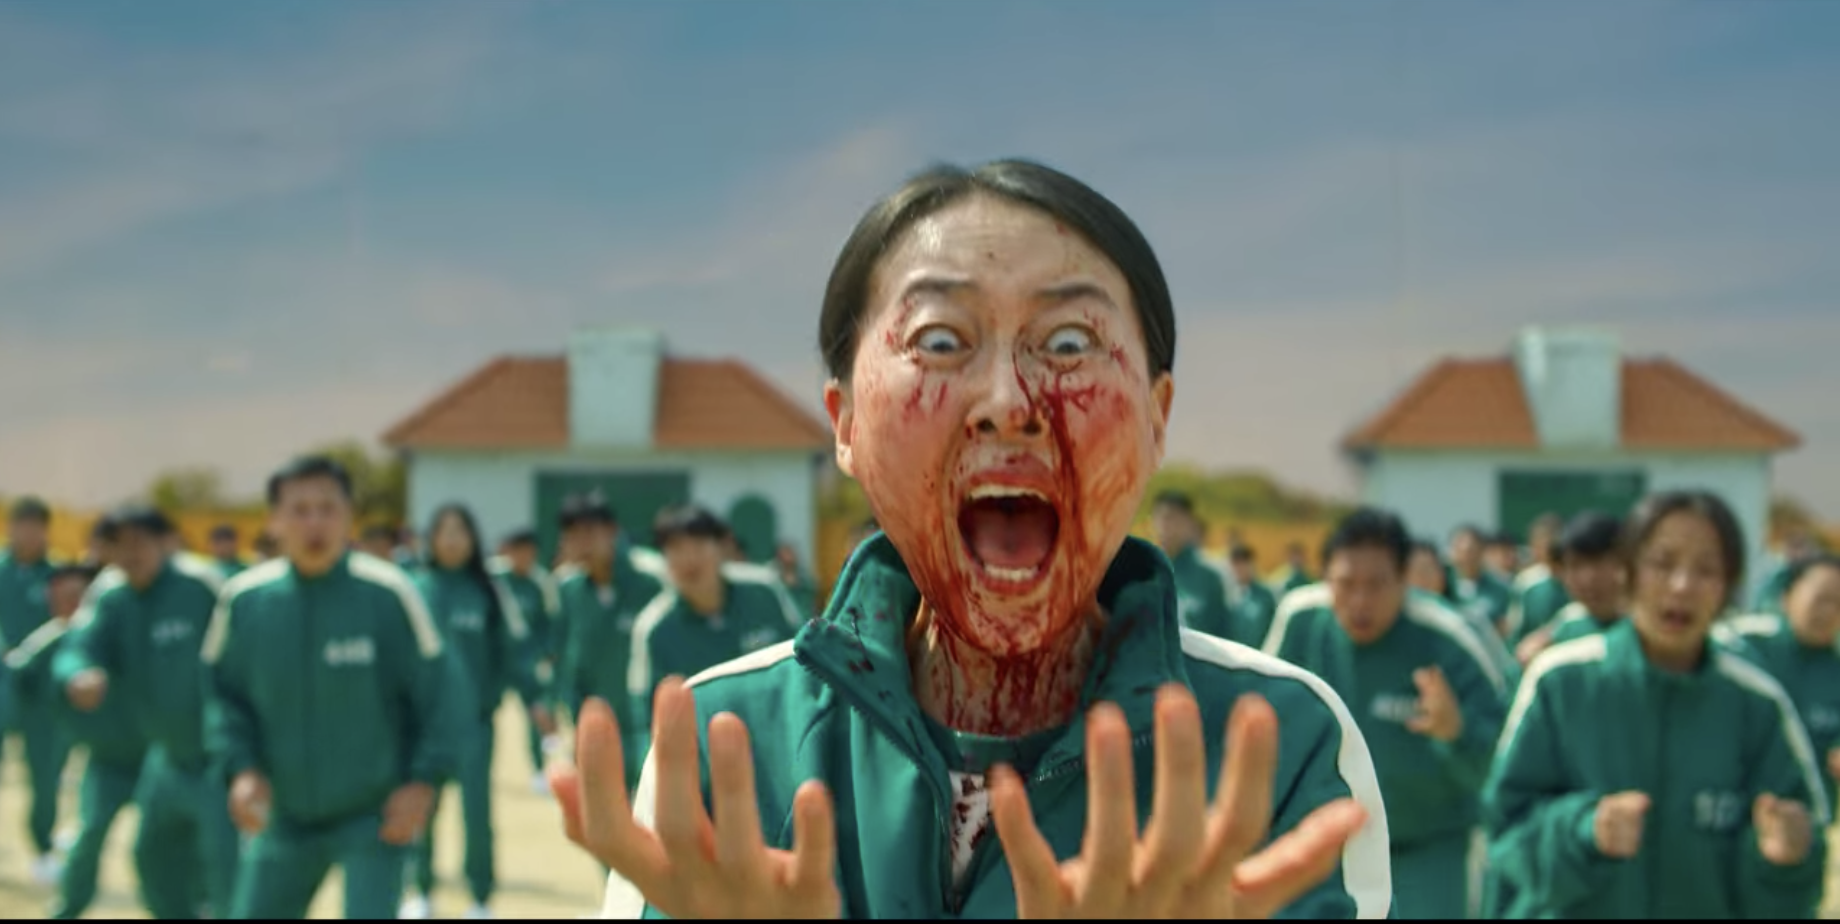 A woman screaming as she's covered in blood